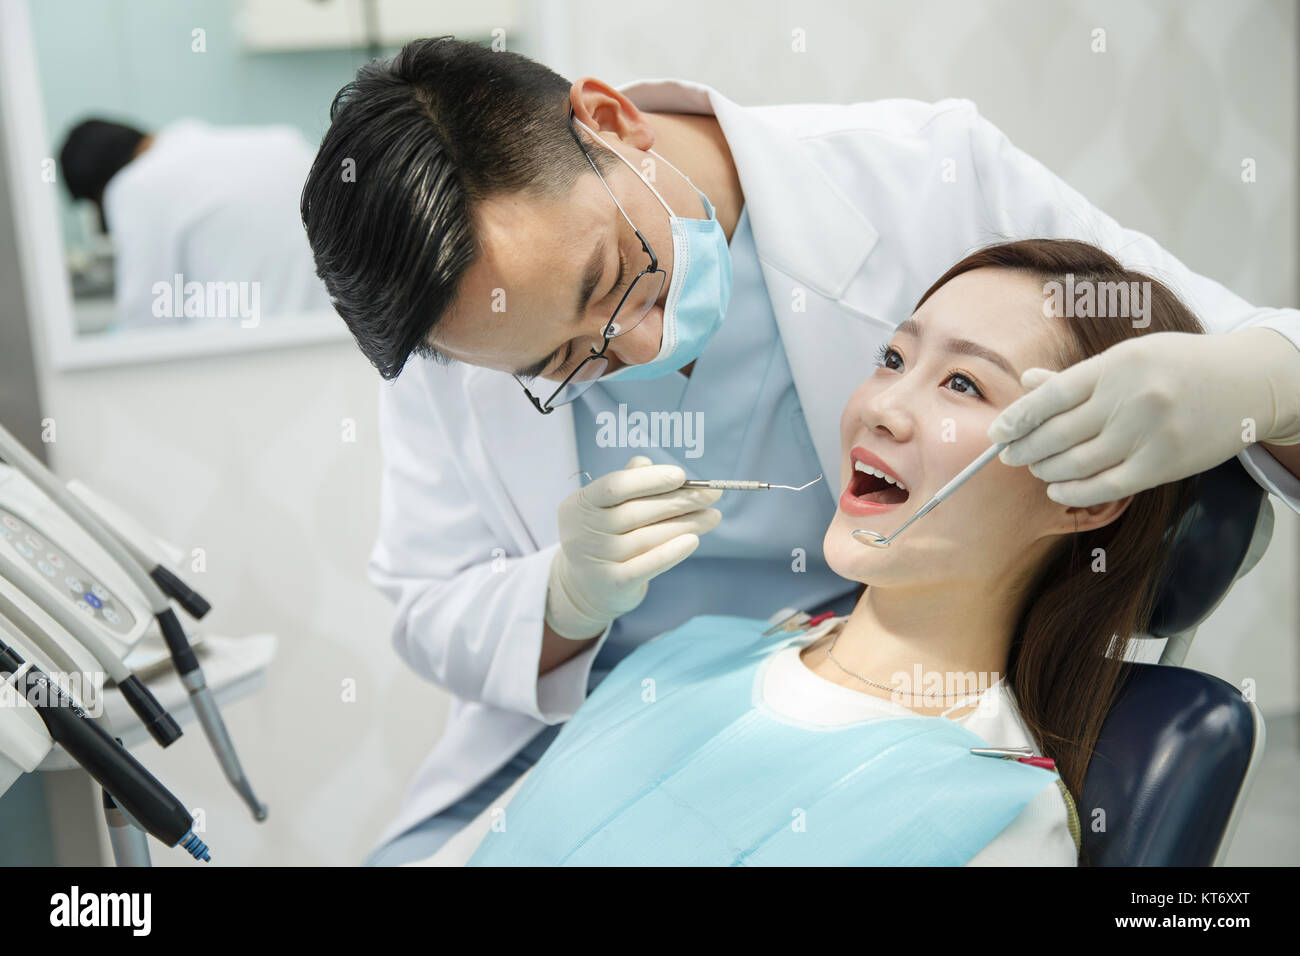 Male dentists and female patients - Stock Image